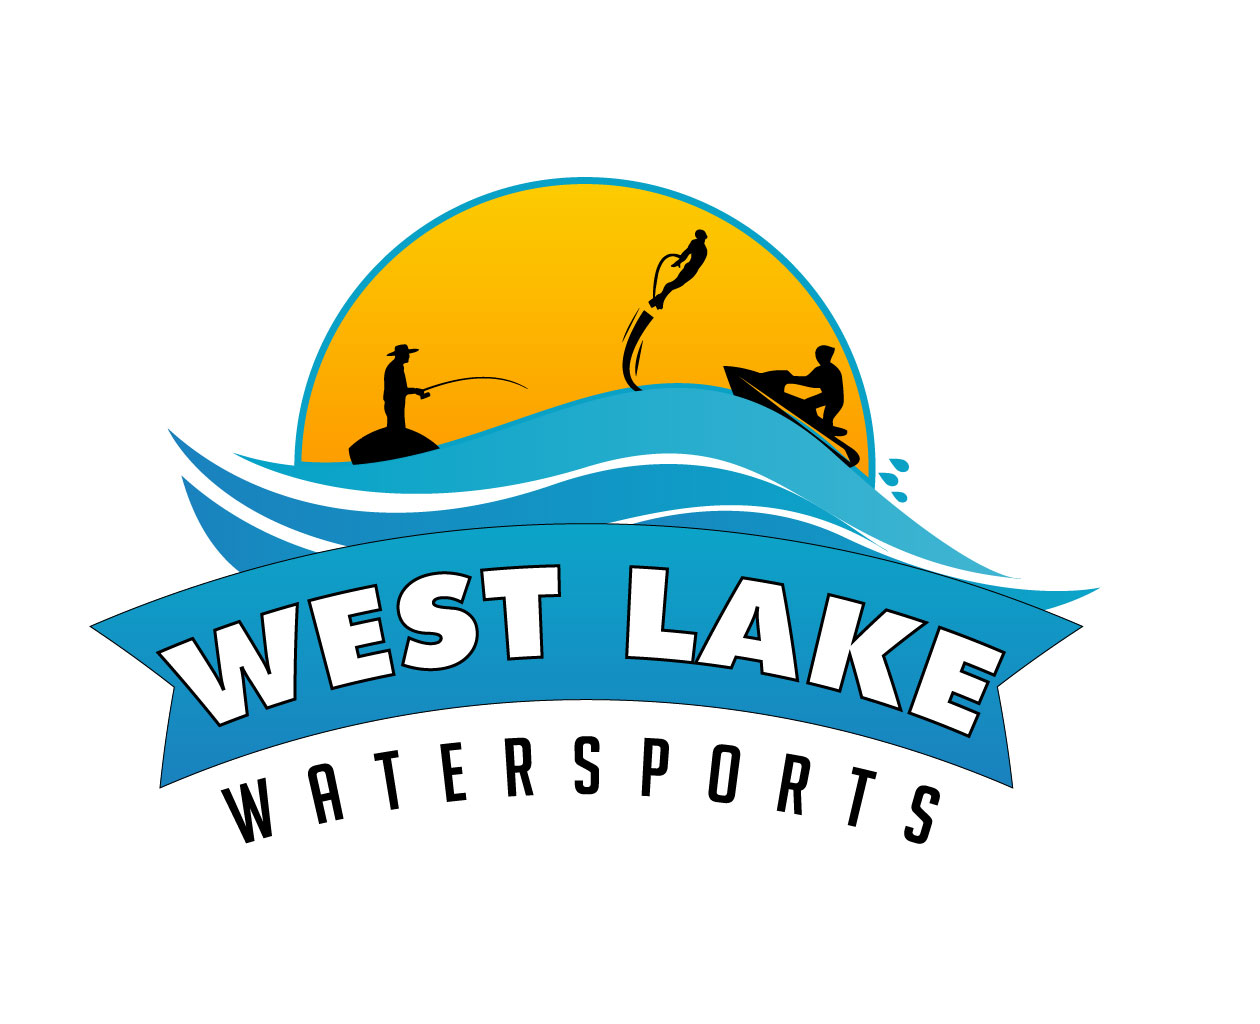 West Lake Watersports